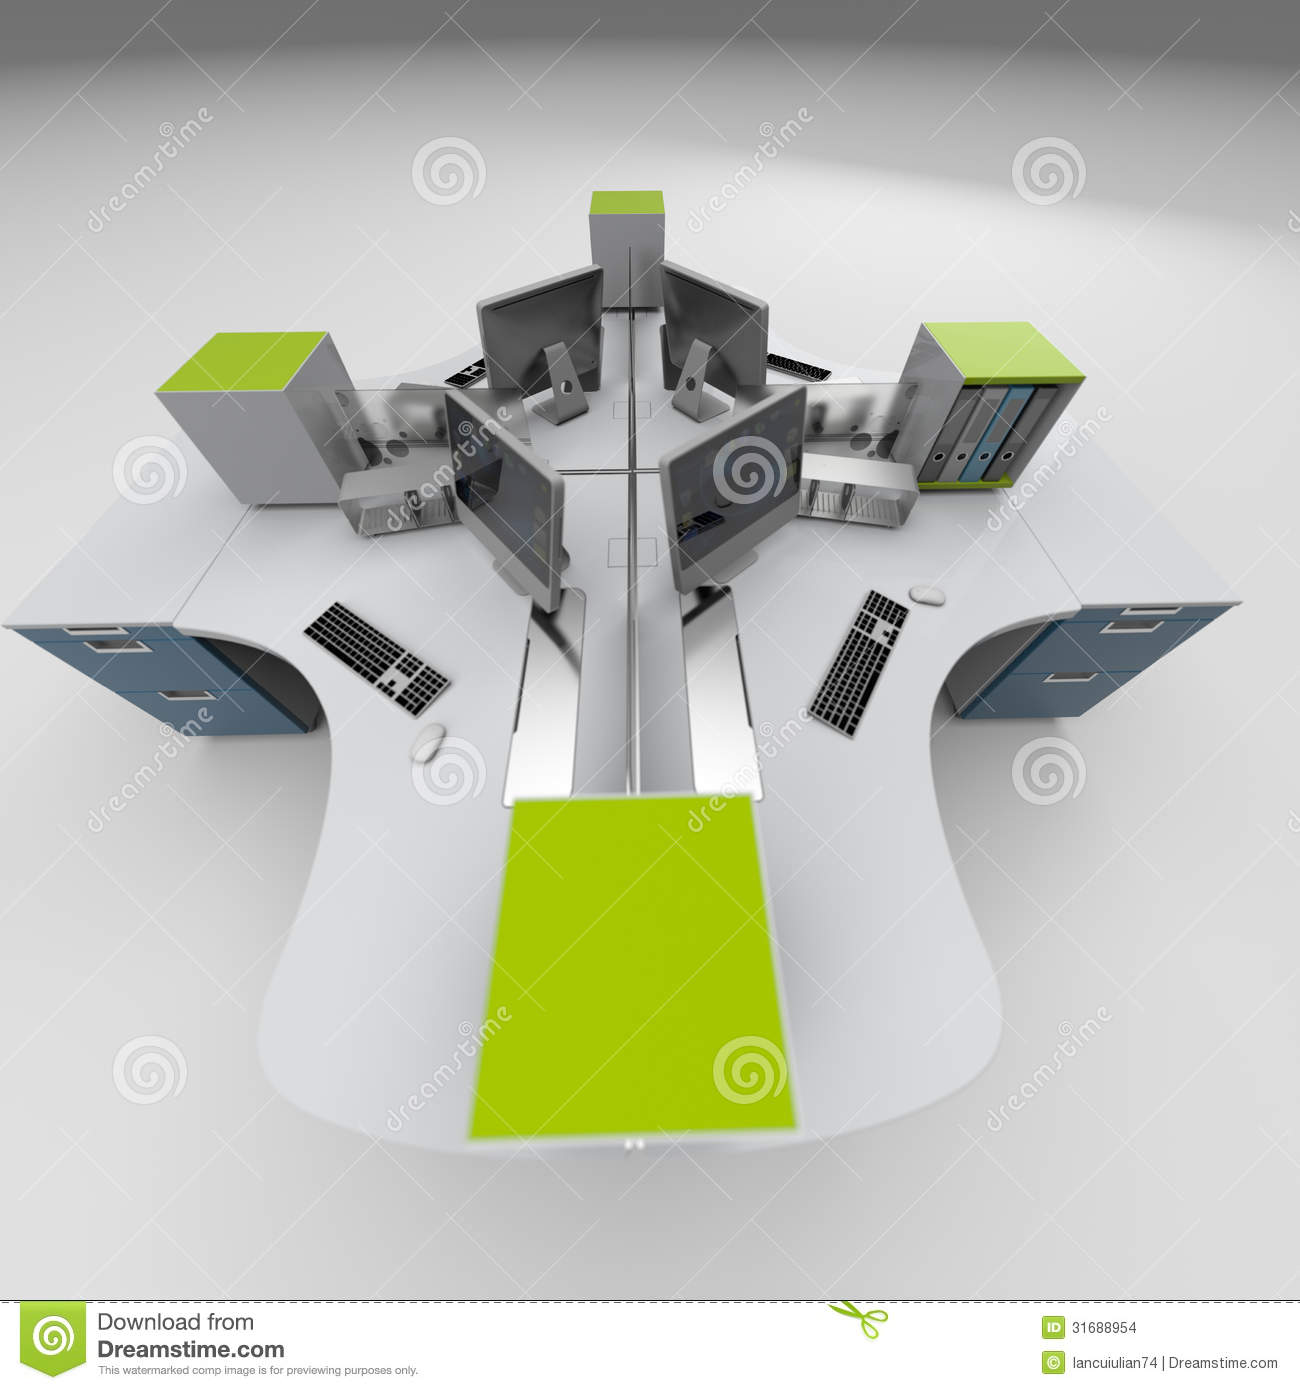 Office furniture design rendering studio stock images for Table graphic design